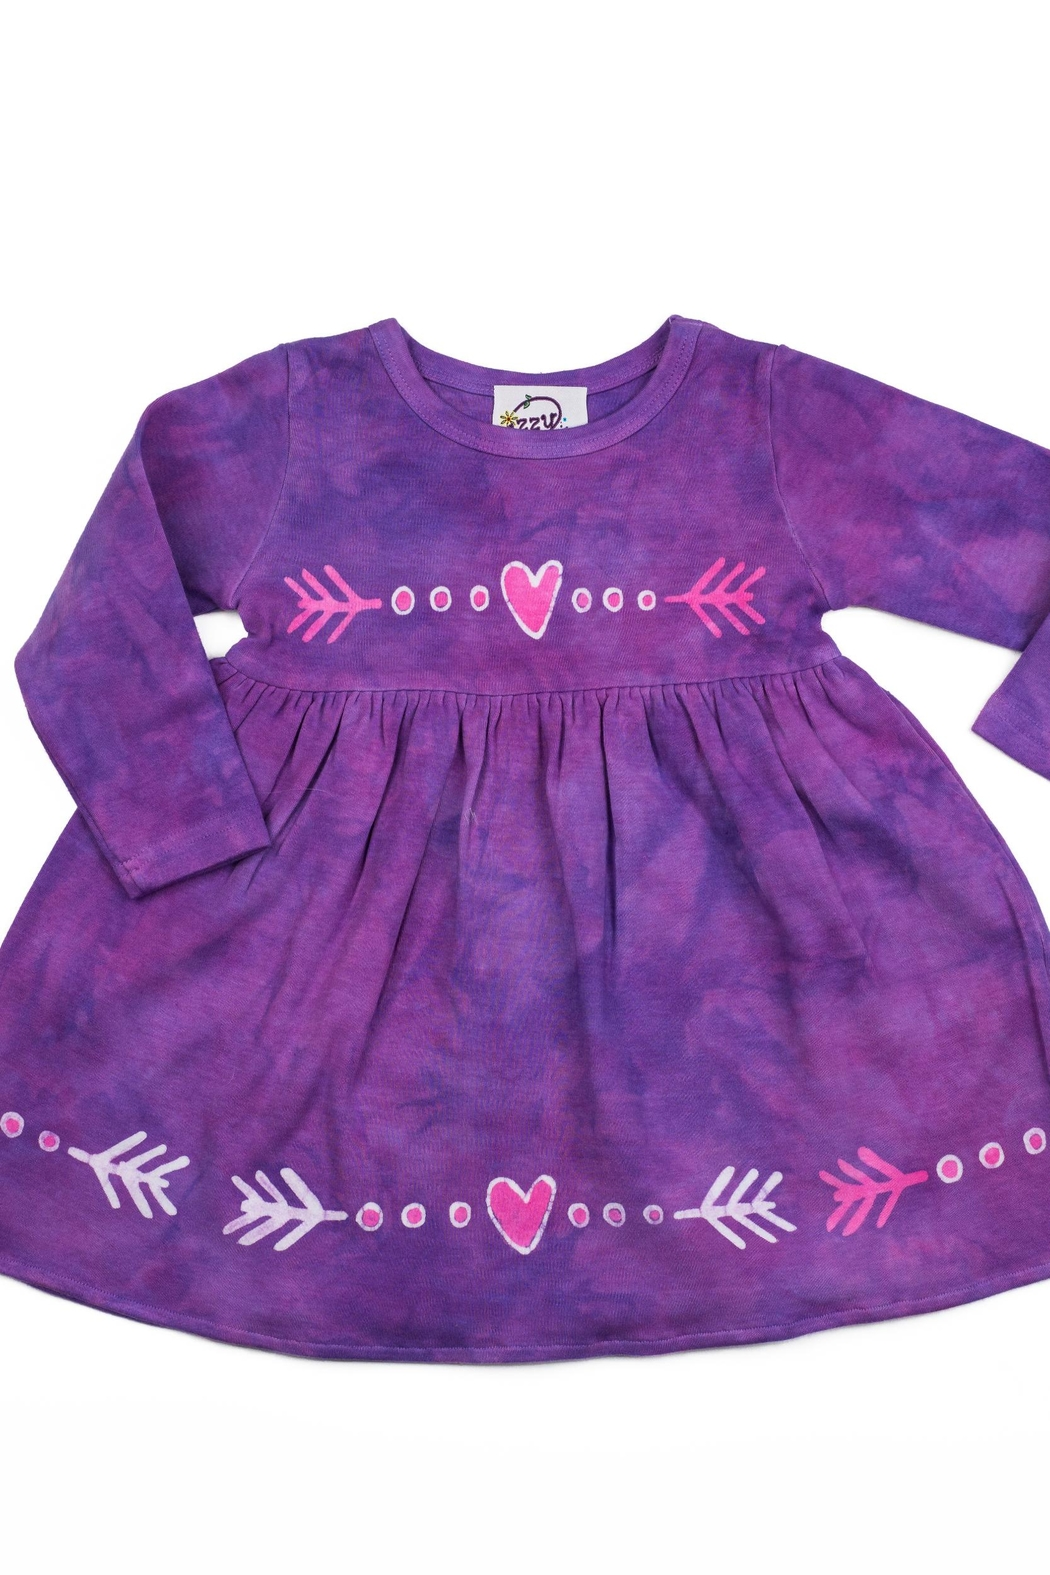 LizzyLoo Designs Infant Heart Dress - Main Image